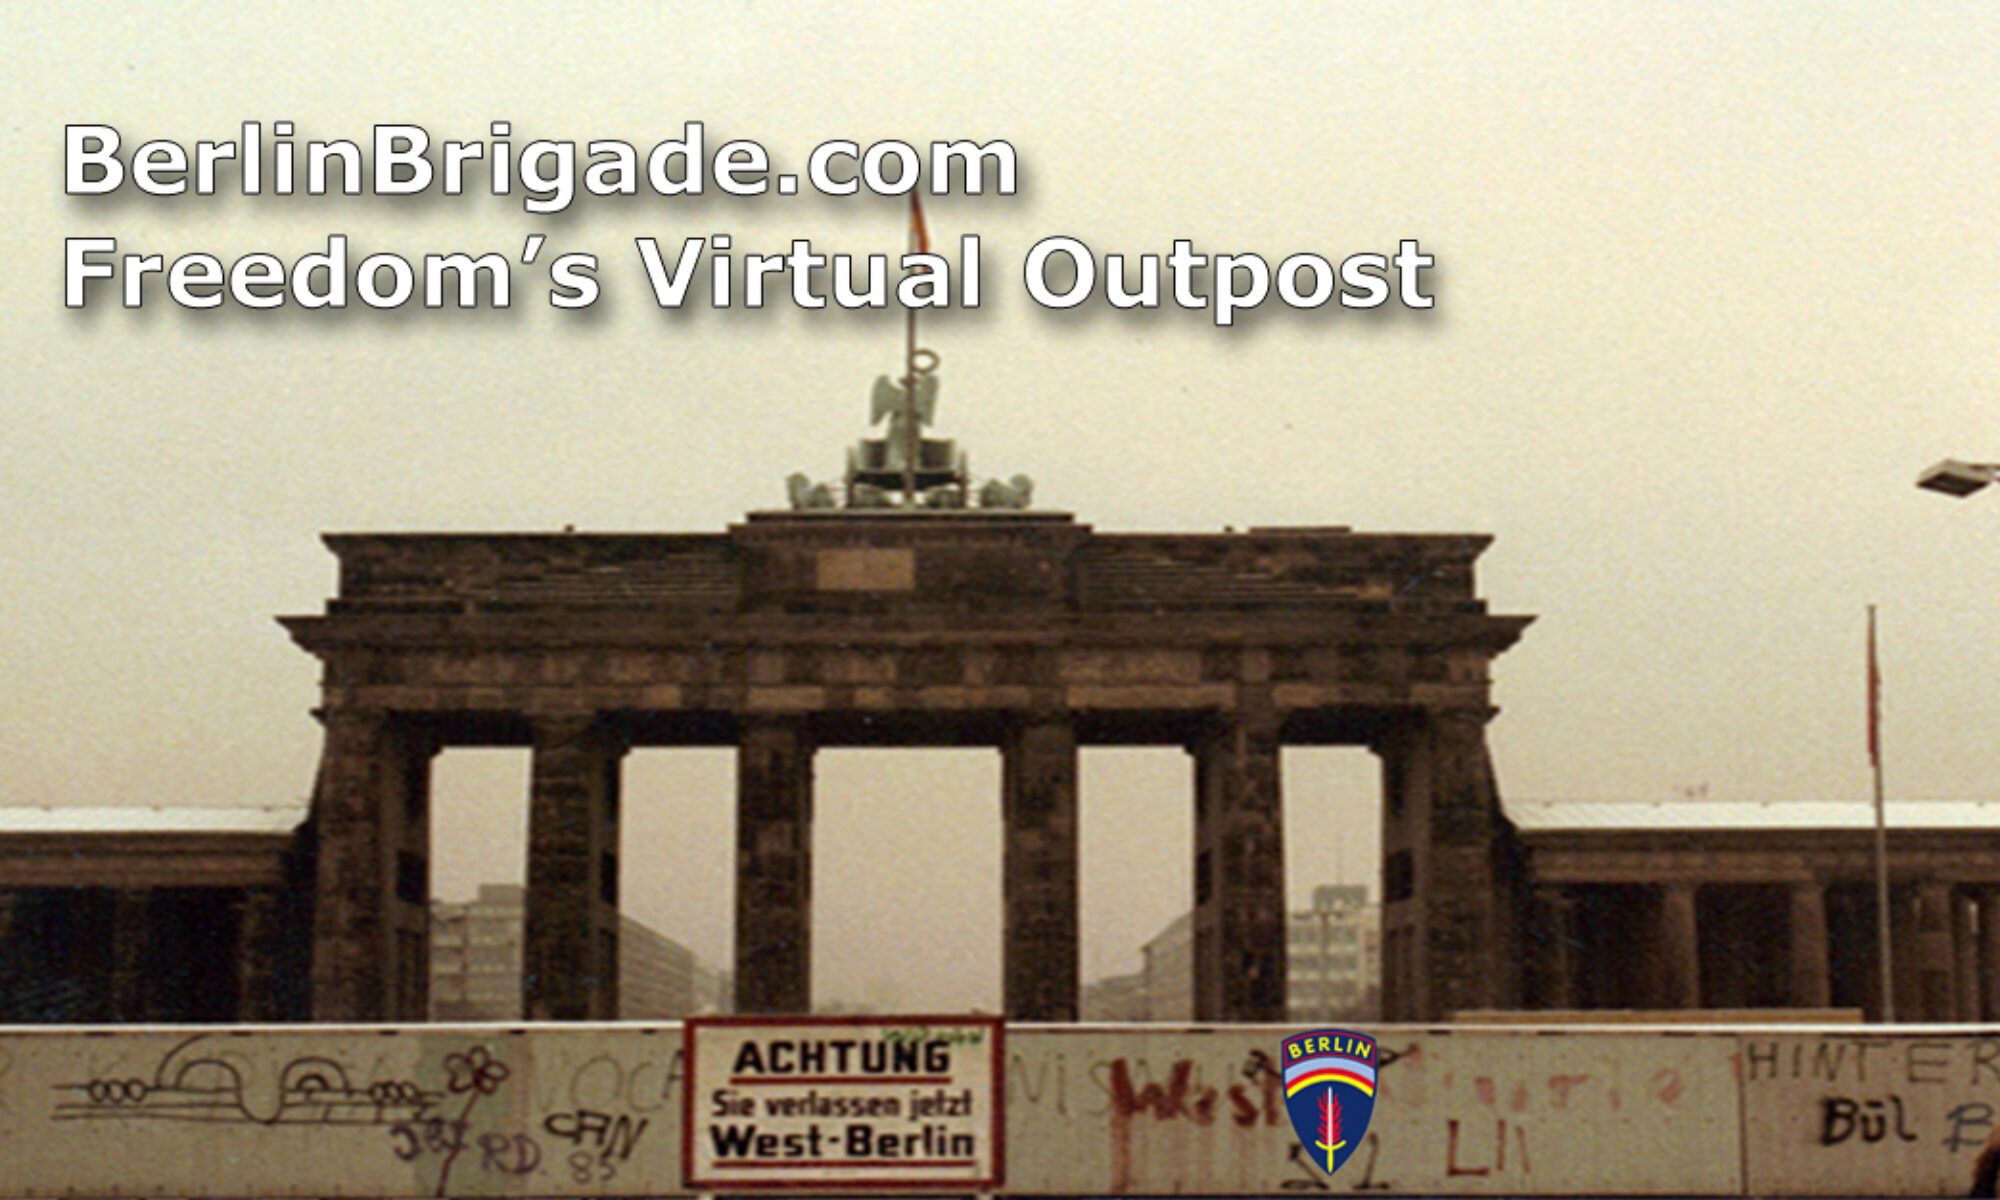 BerlinBrigade(dot)com